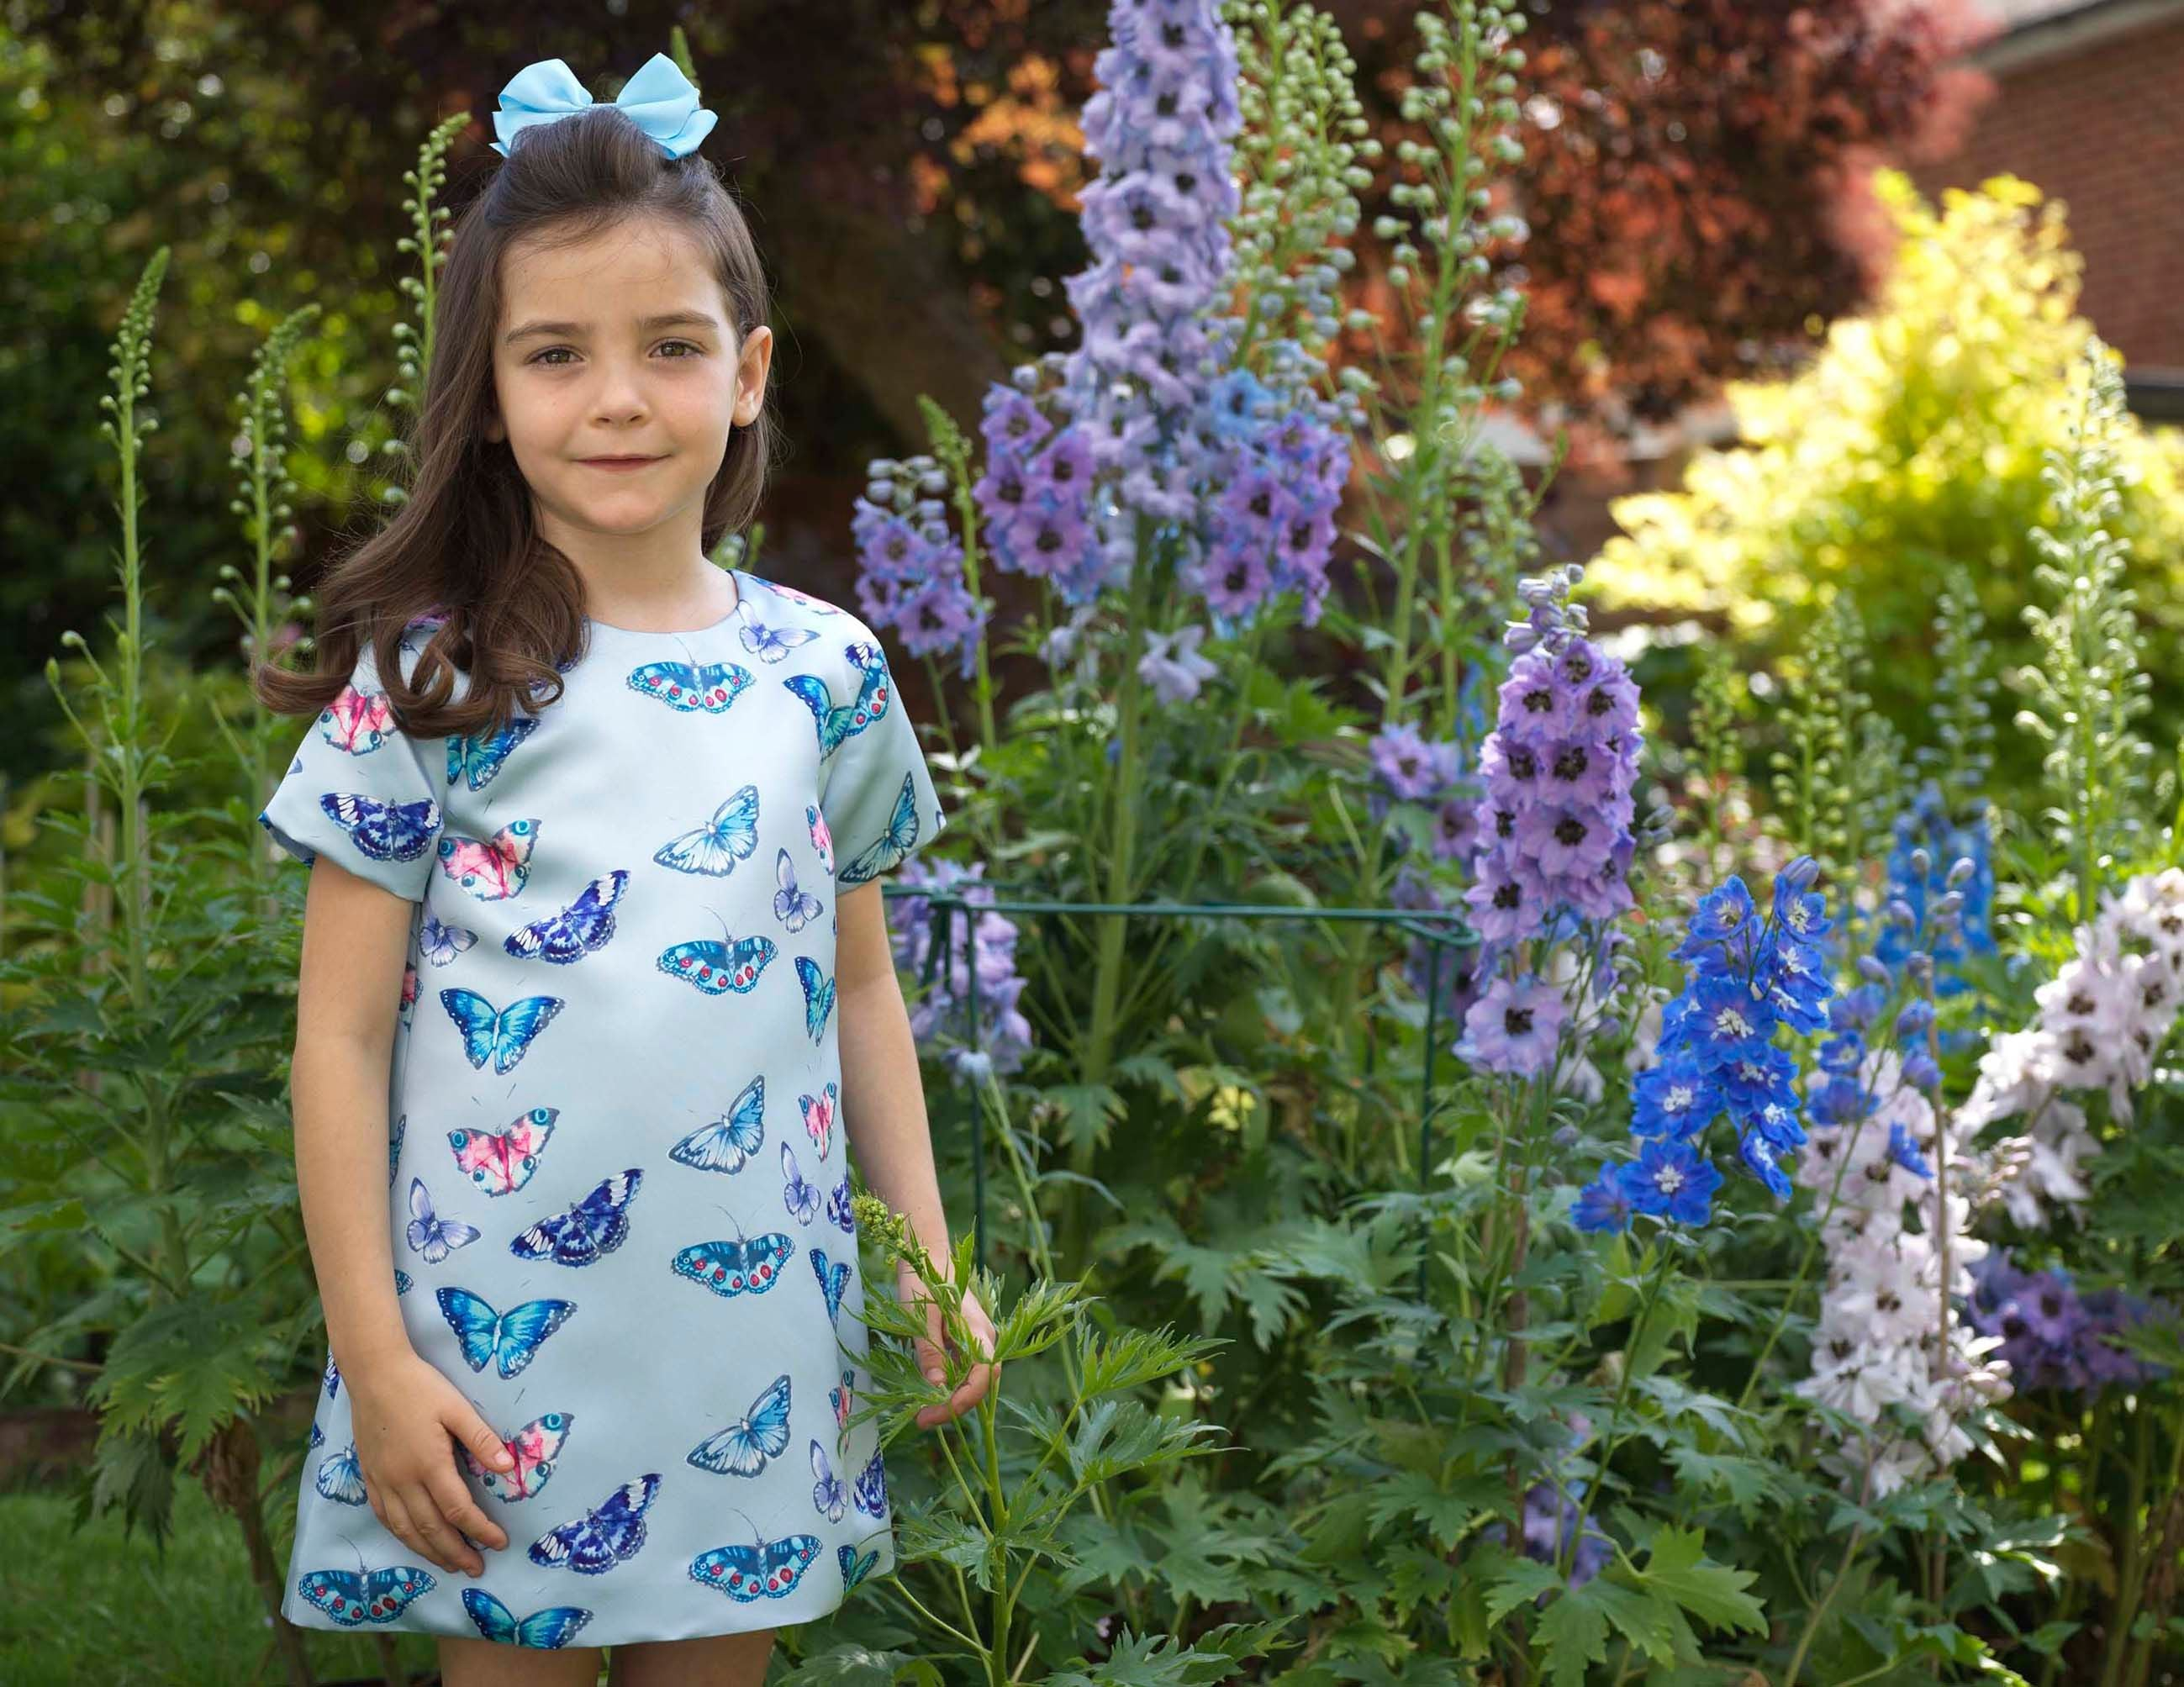 Young girl in butterfly print satin dress in floral garden